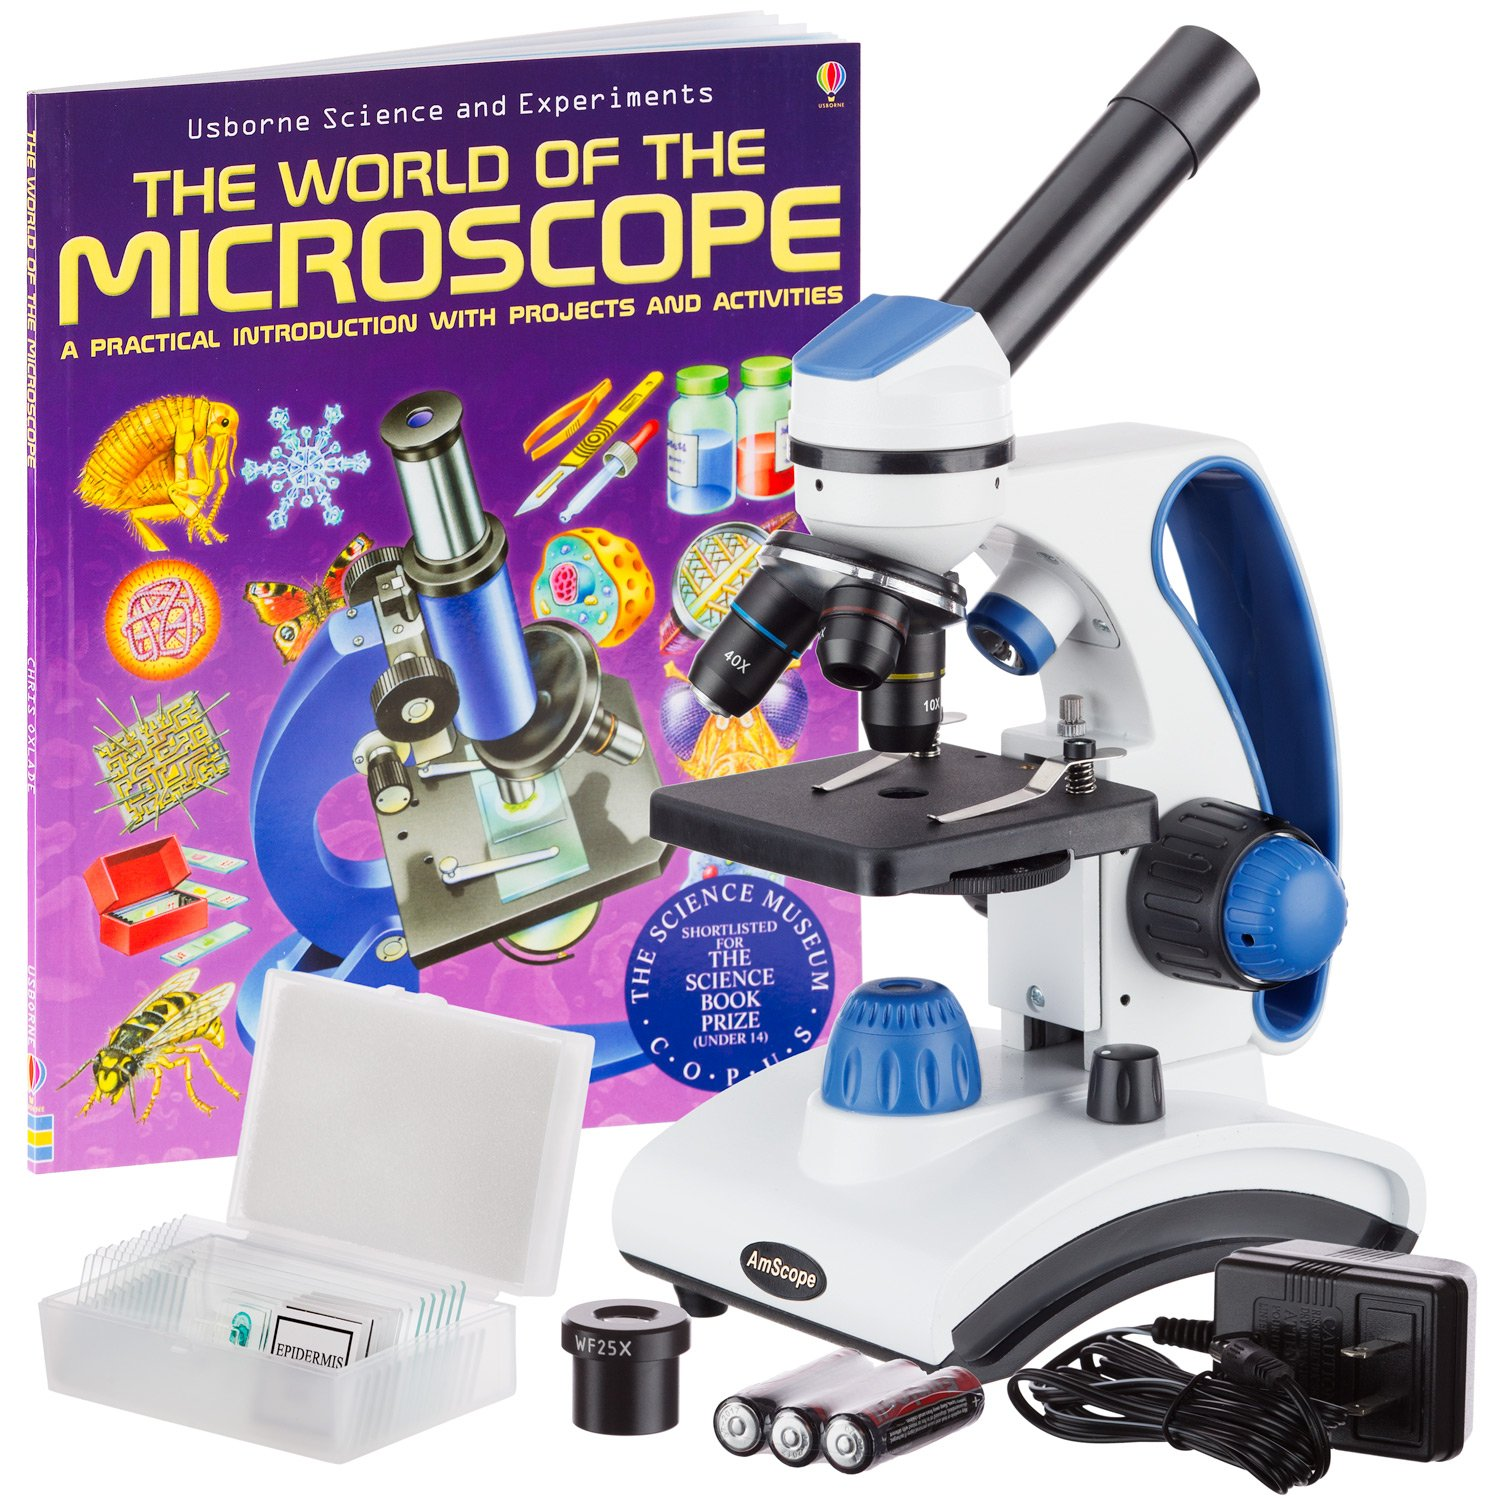 AmScope M162C-2L-PB10-WM 40X-1000X Dual Light Glass Lens All-Metal Frame Student Microscope with Slides and Book